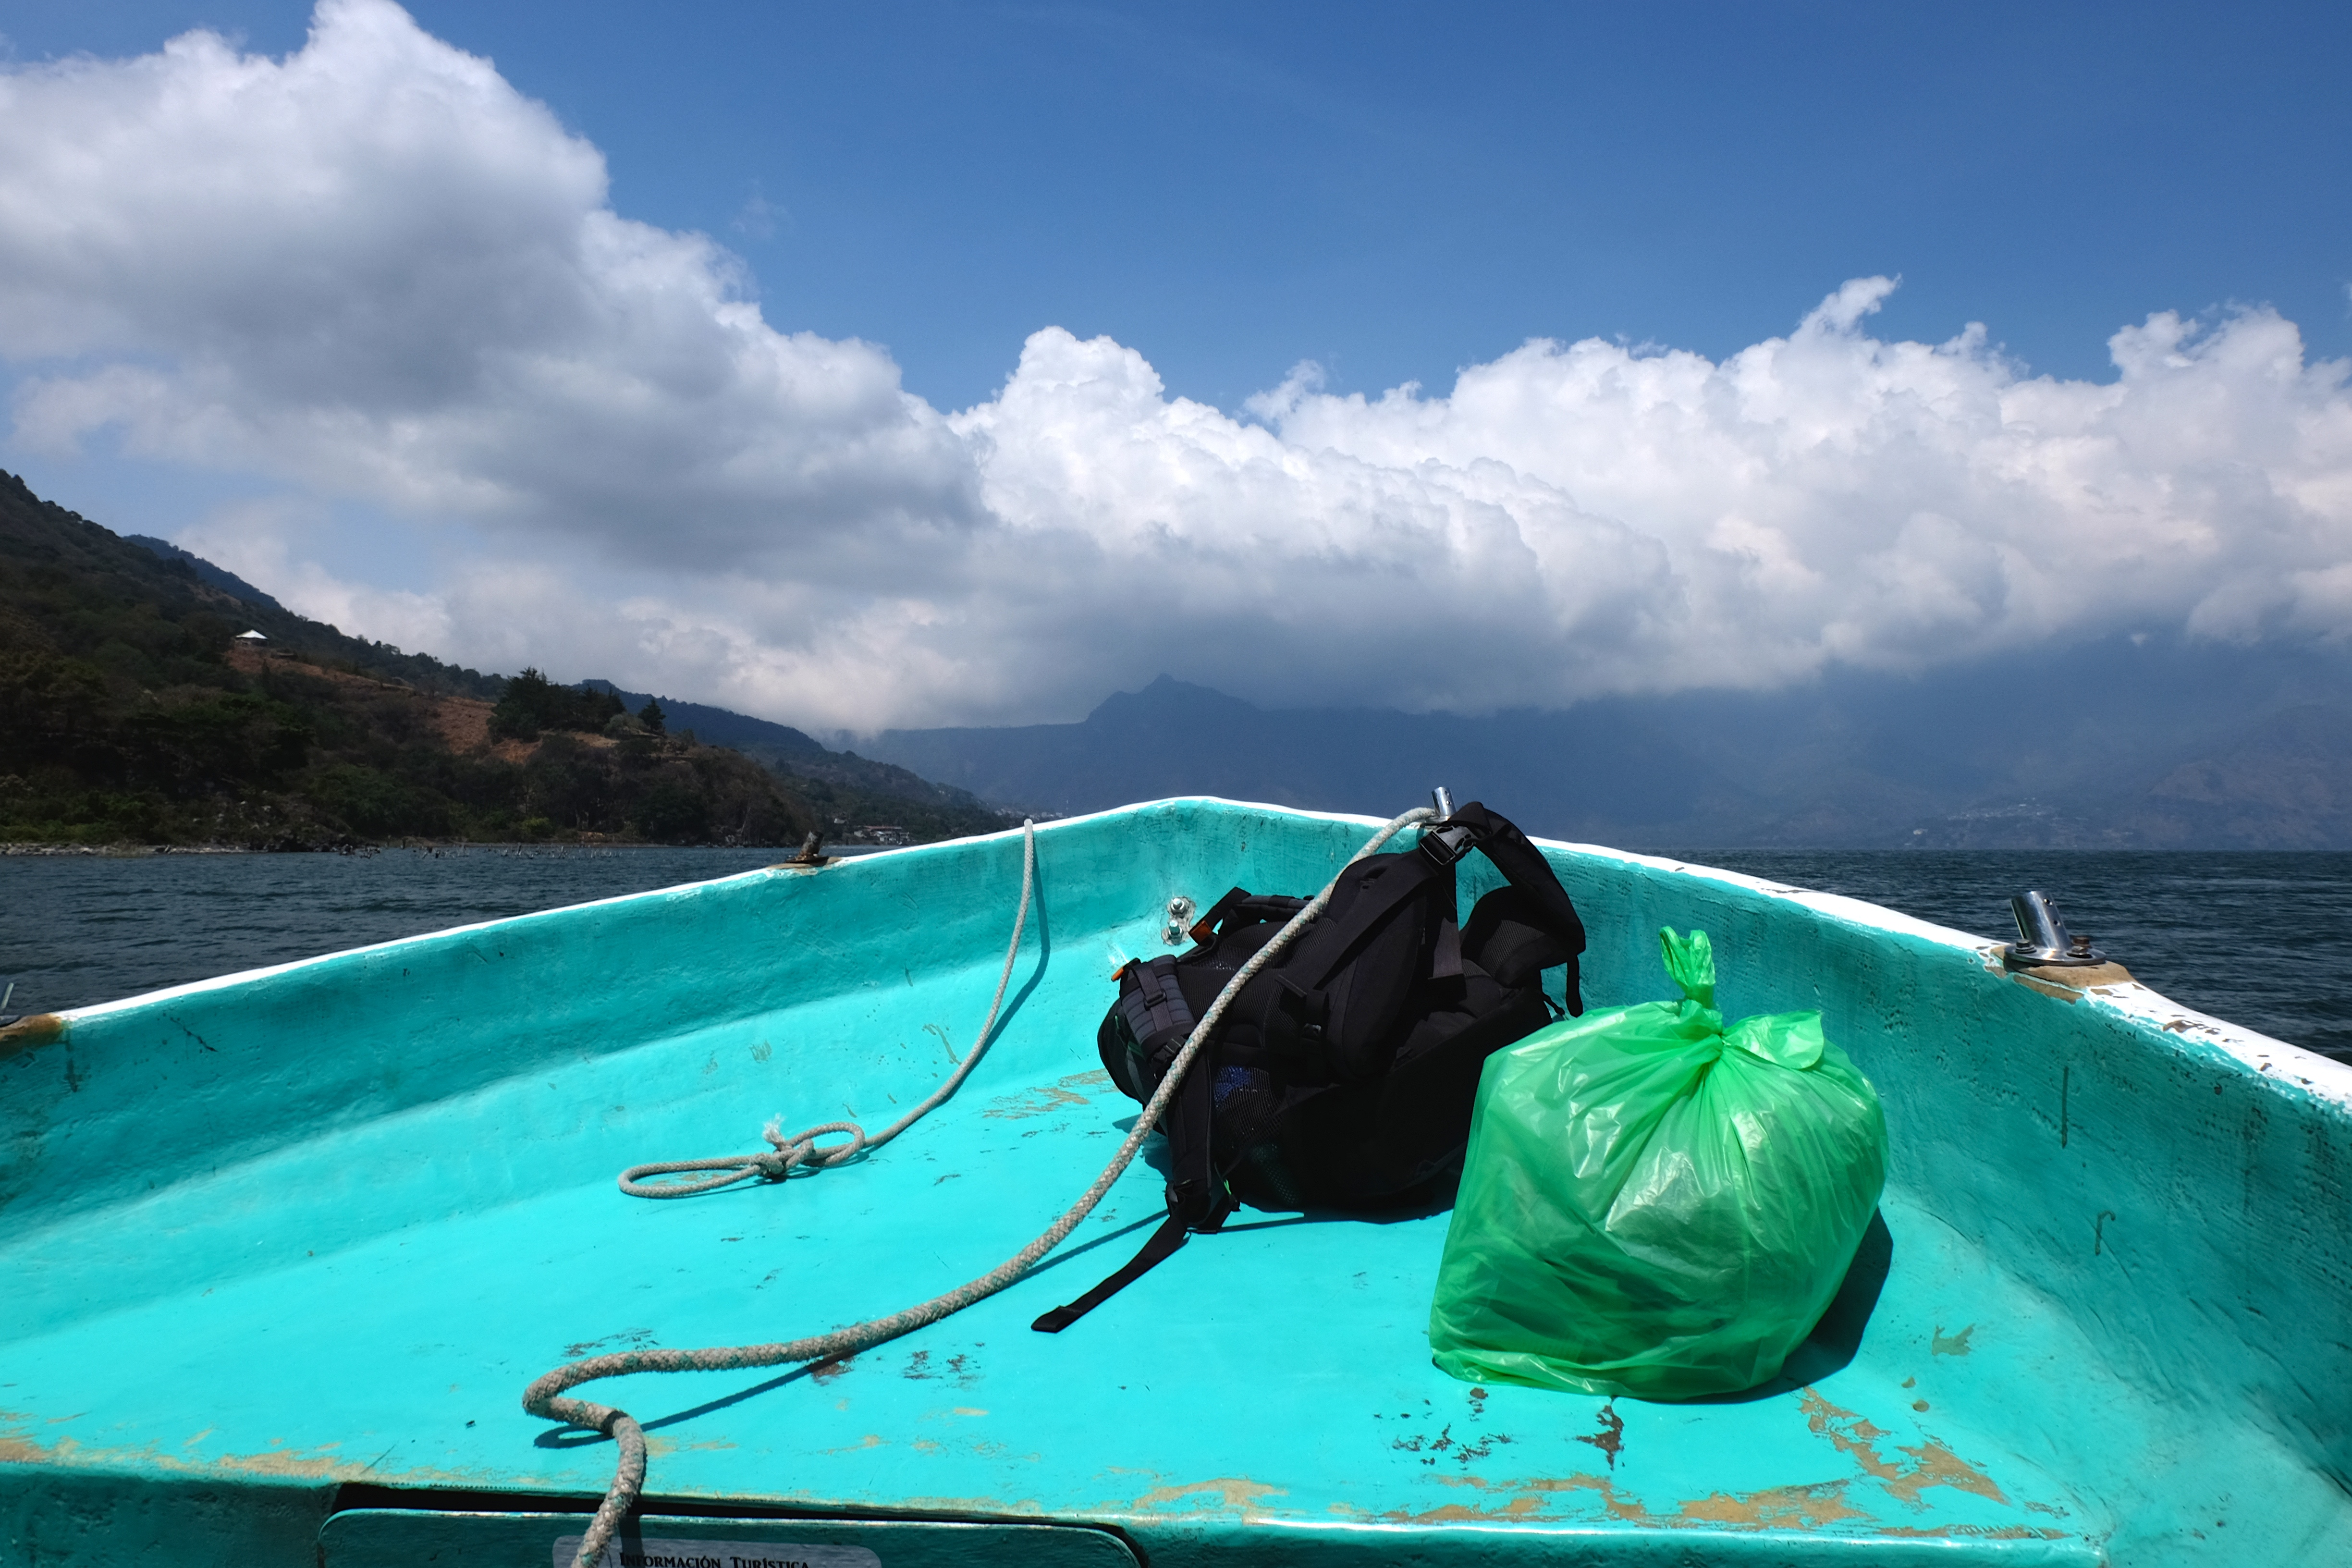 Boat ride on Lake Atitlan, Guatemala